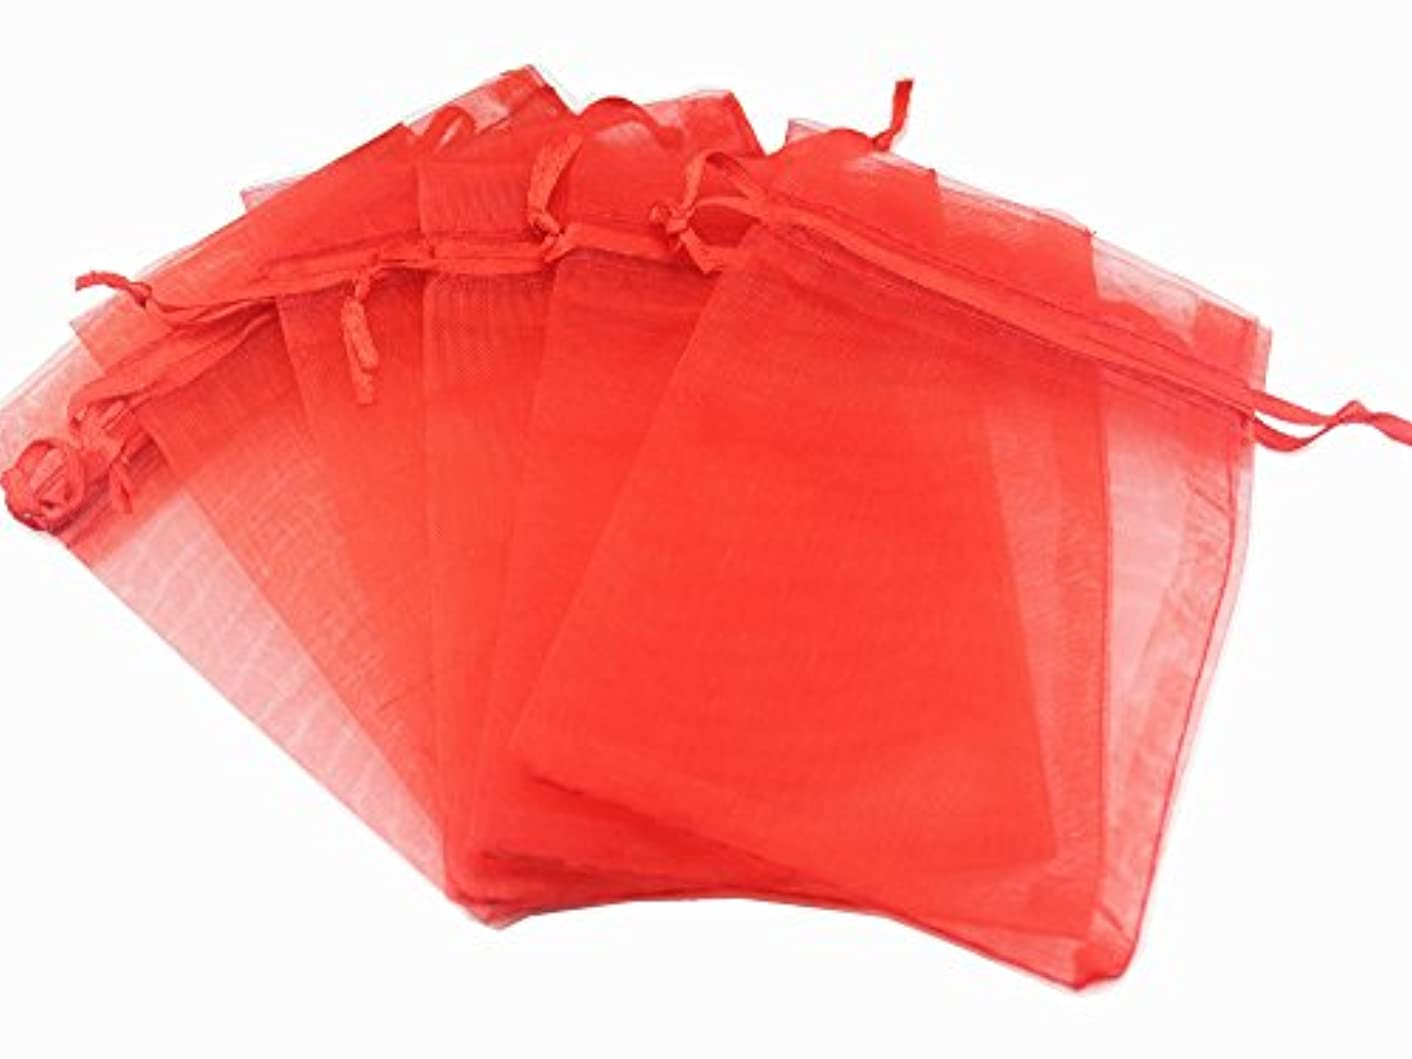 QIANHAILIZZ 100 Pack 7 x 9 Inch Solid Color Drawstring Bags Organza Jewelry Gift Pouch Candy Pouch Drawstring Wedding Favor Bags OB18110281723 (red)